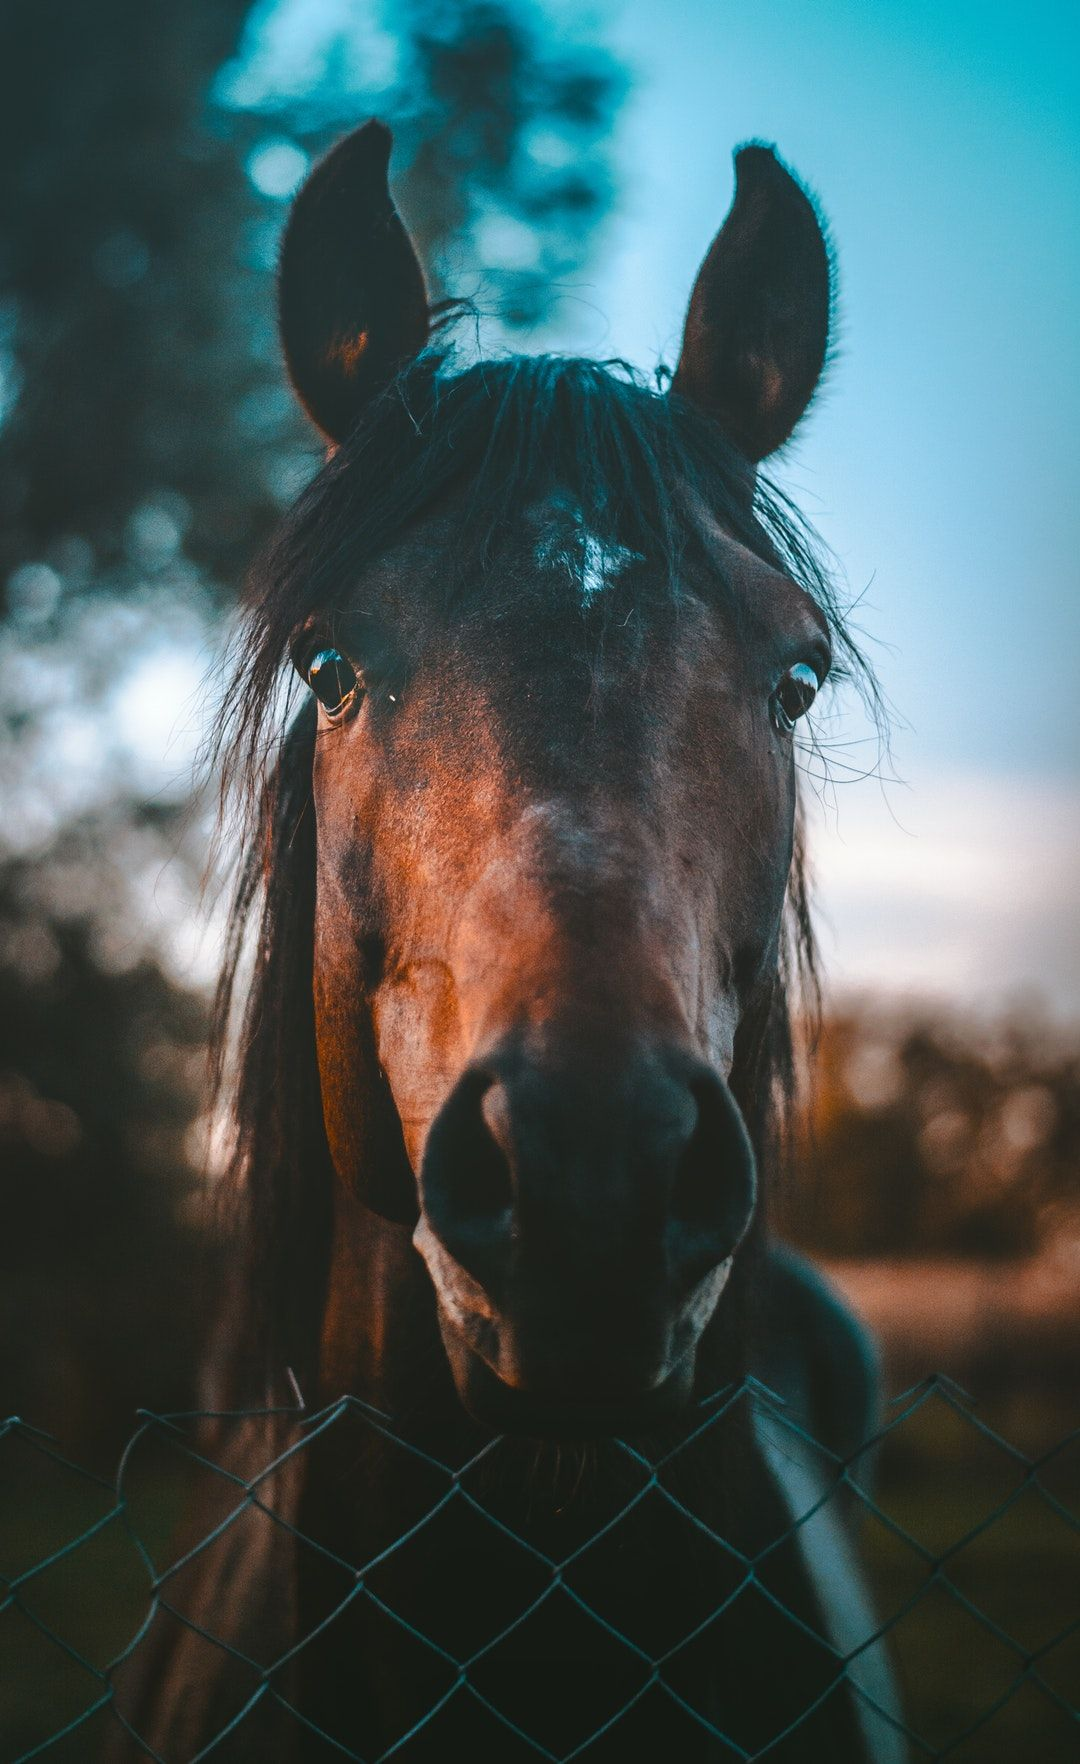 Animal Horse Iphone Wallpaper And Download Hd Photo By Marko Blazevic Kerber On Unsplash Horse Wallpaper Horses Pretty Horses